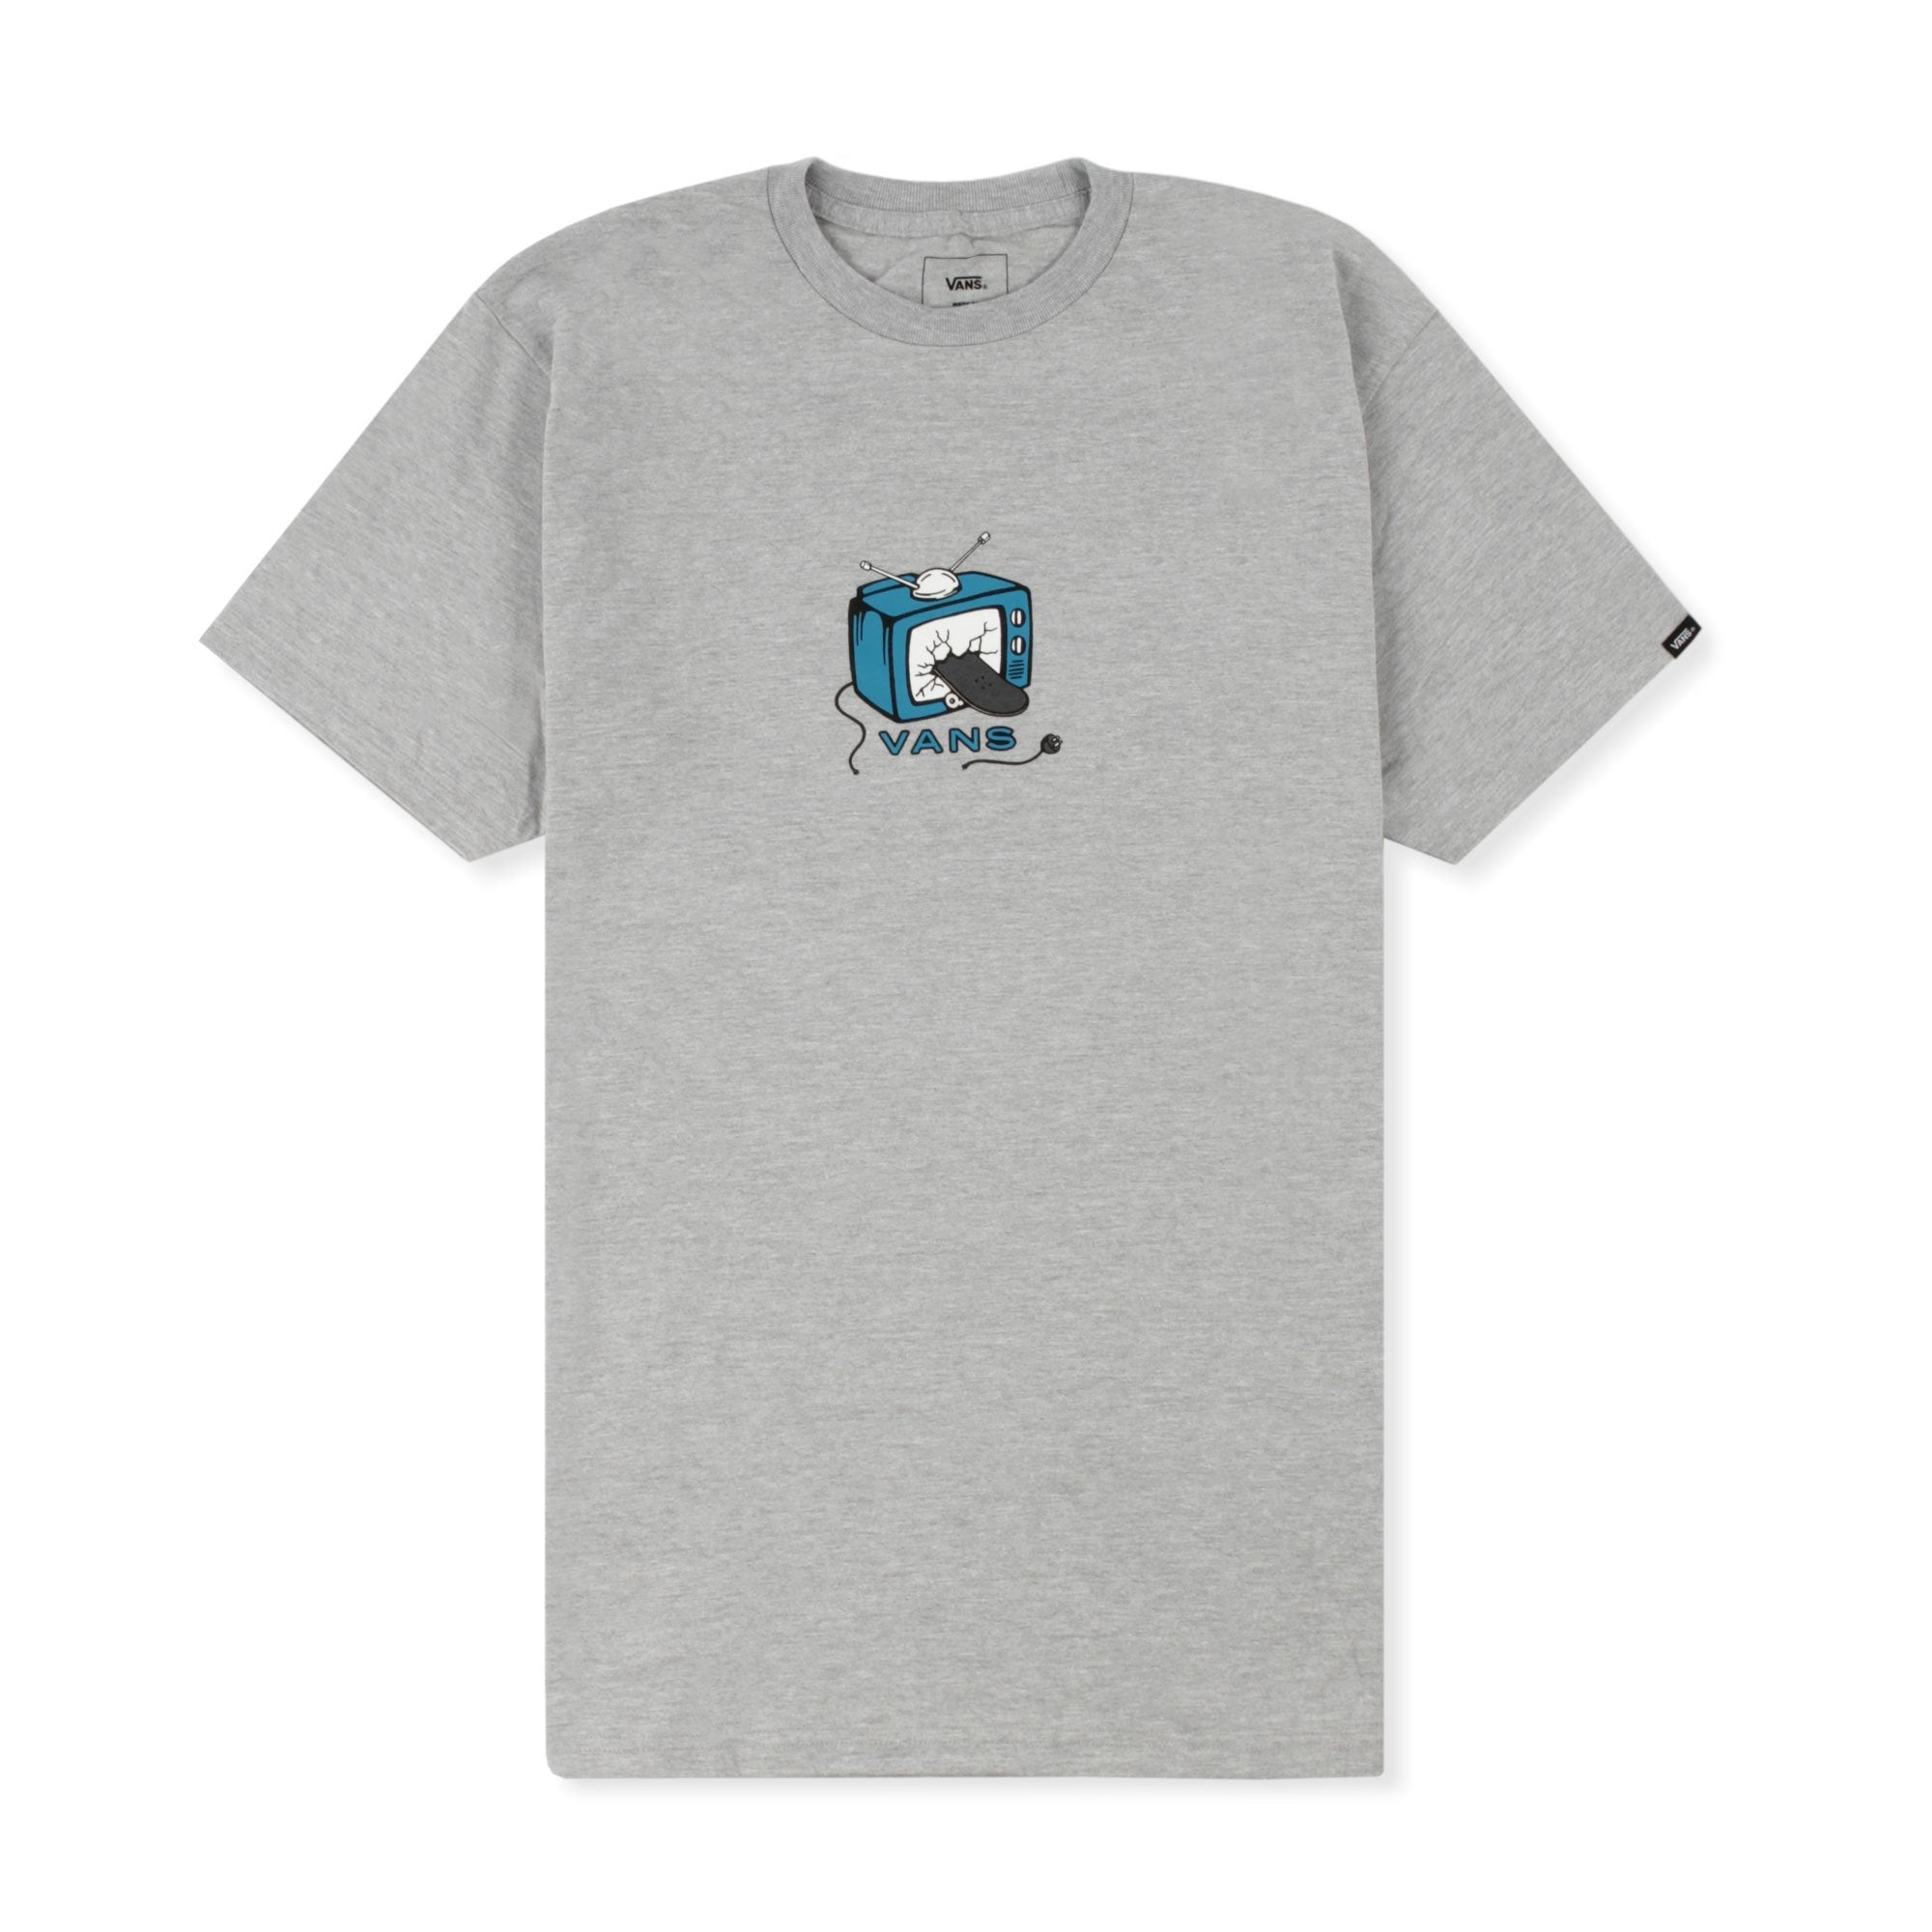 Vans Skate TV Tee Product Photo #1